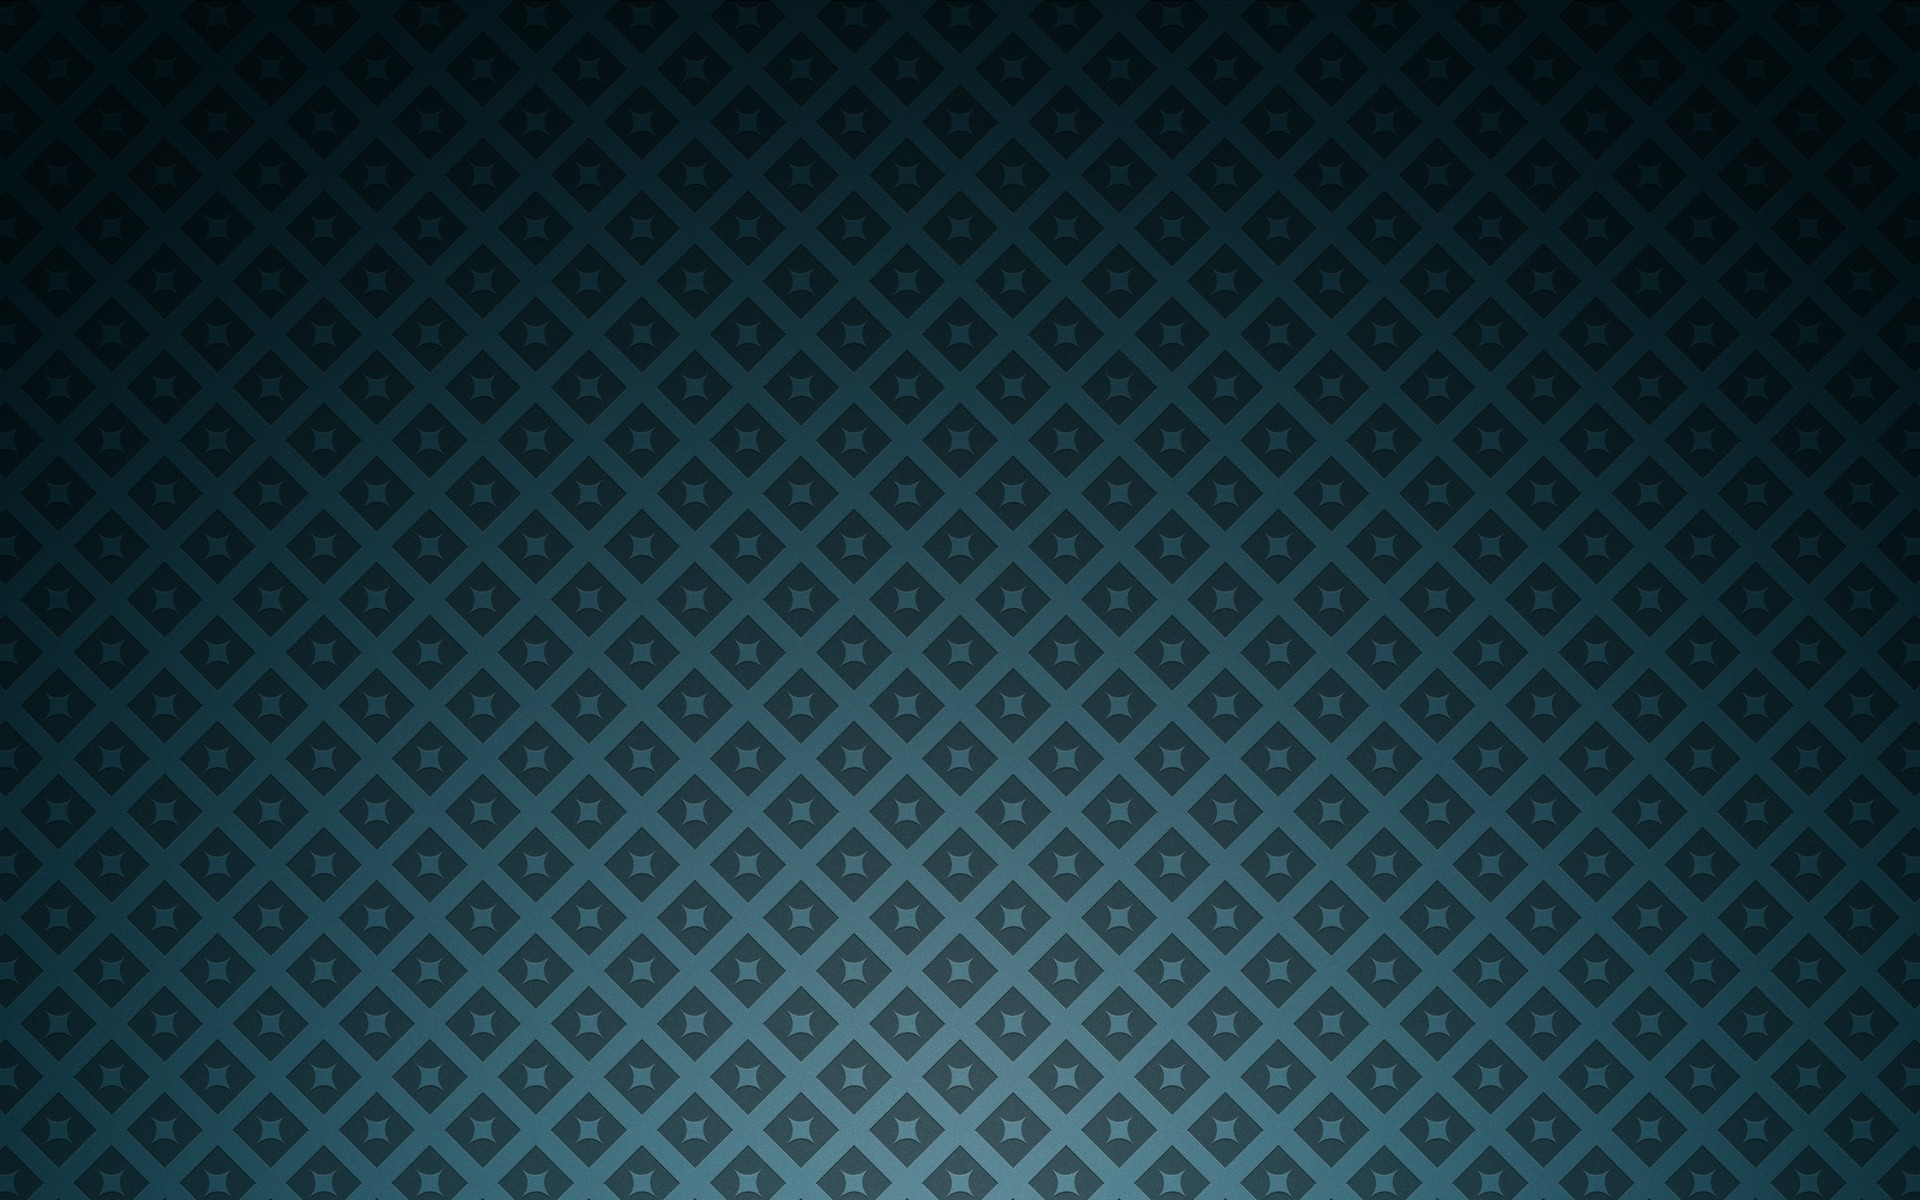 Cute Shelf Wallpaper For Ipad Polka Dot Wallpaper 183 ① Download Free Cool High Resolution